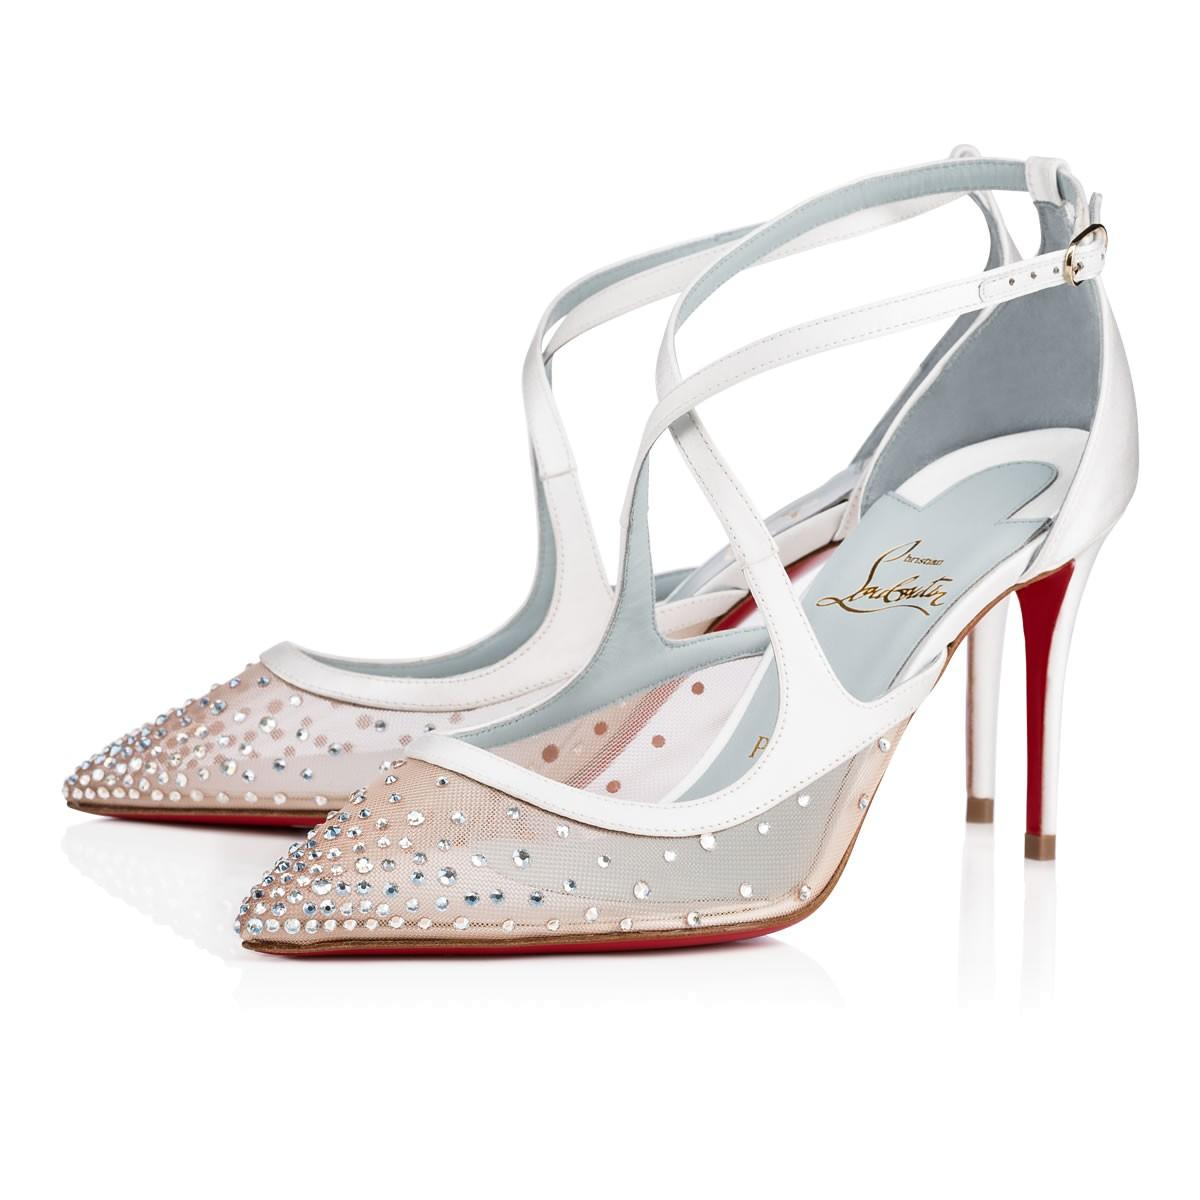 5590708fd94d Christian Louboutin Twistissima Strass Crepe Satin In Crystal ...